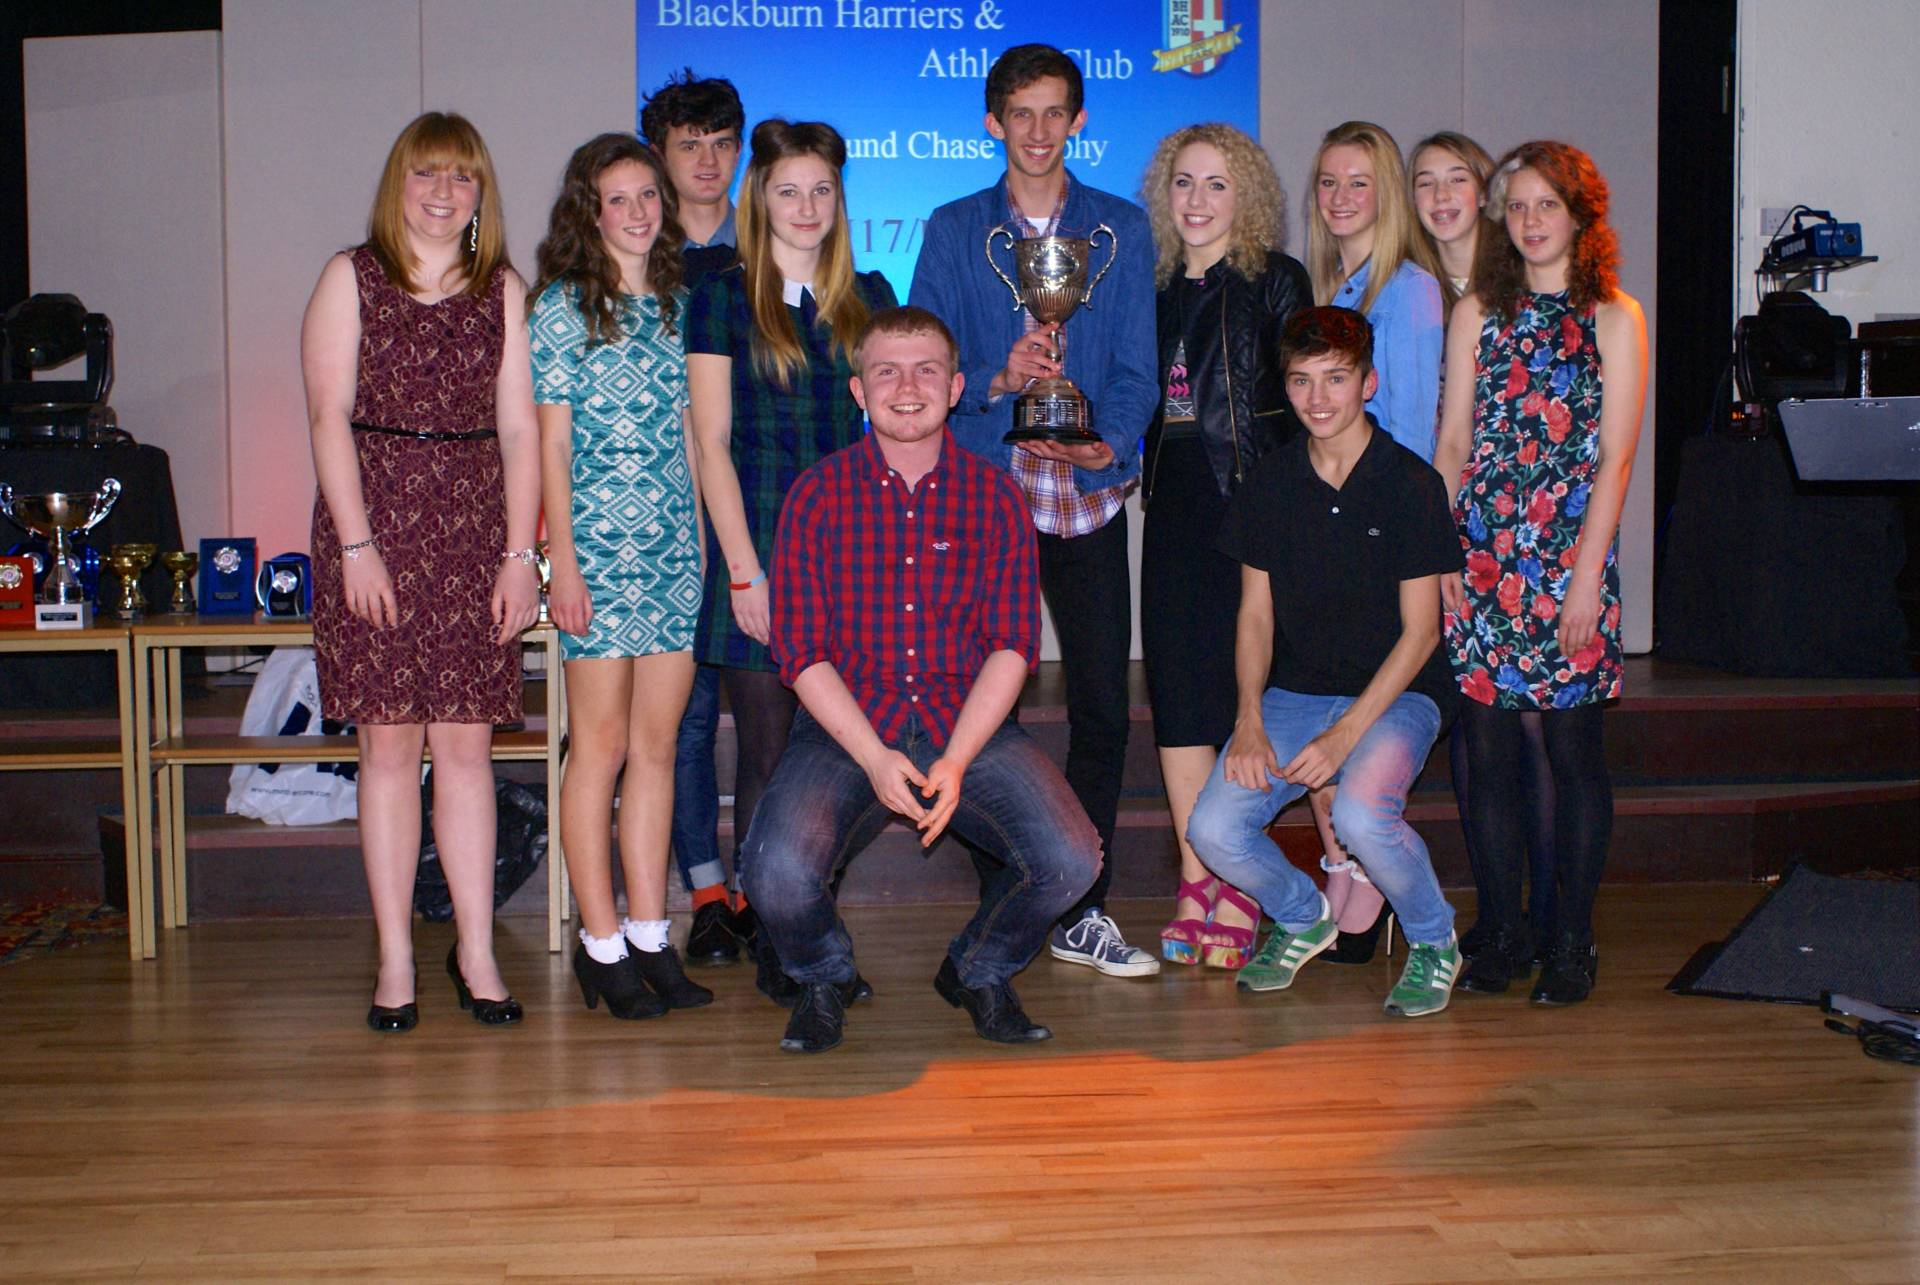 Blackburn Harriers 2013 Presentation Evening